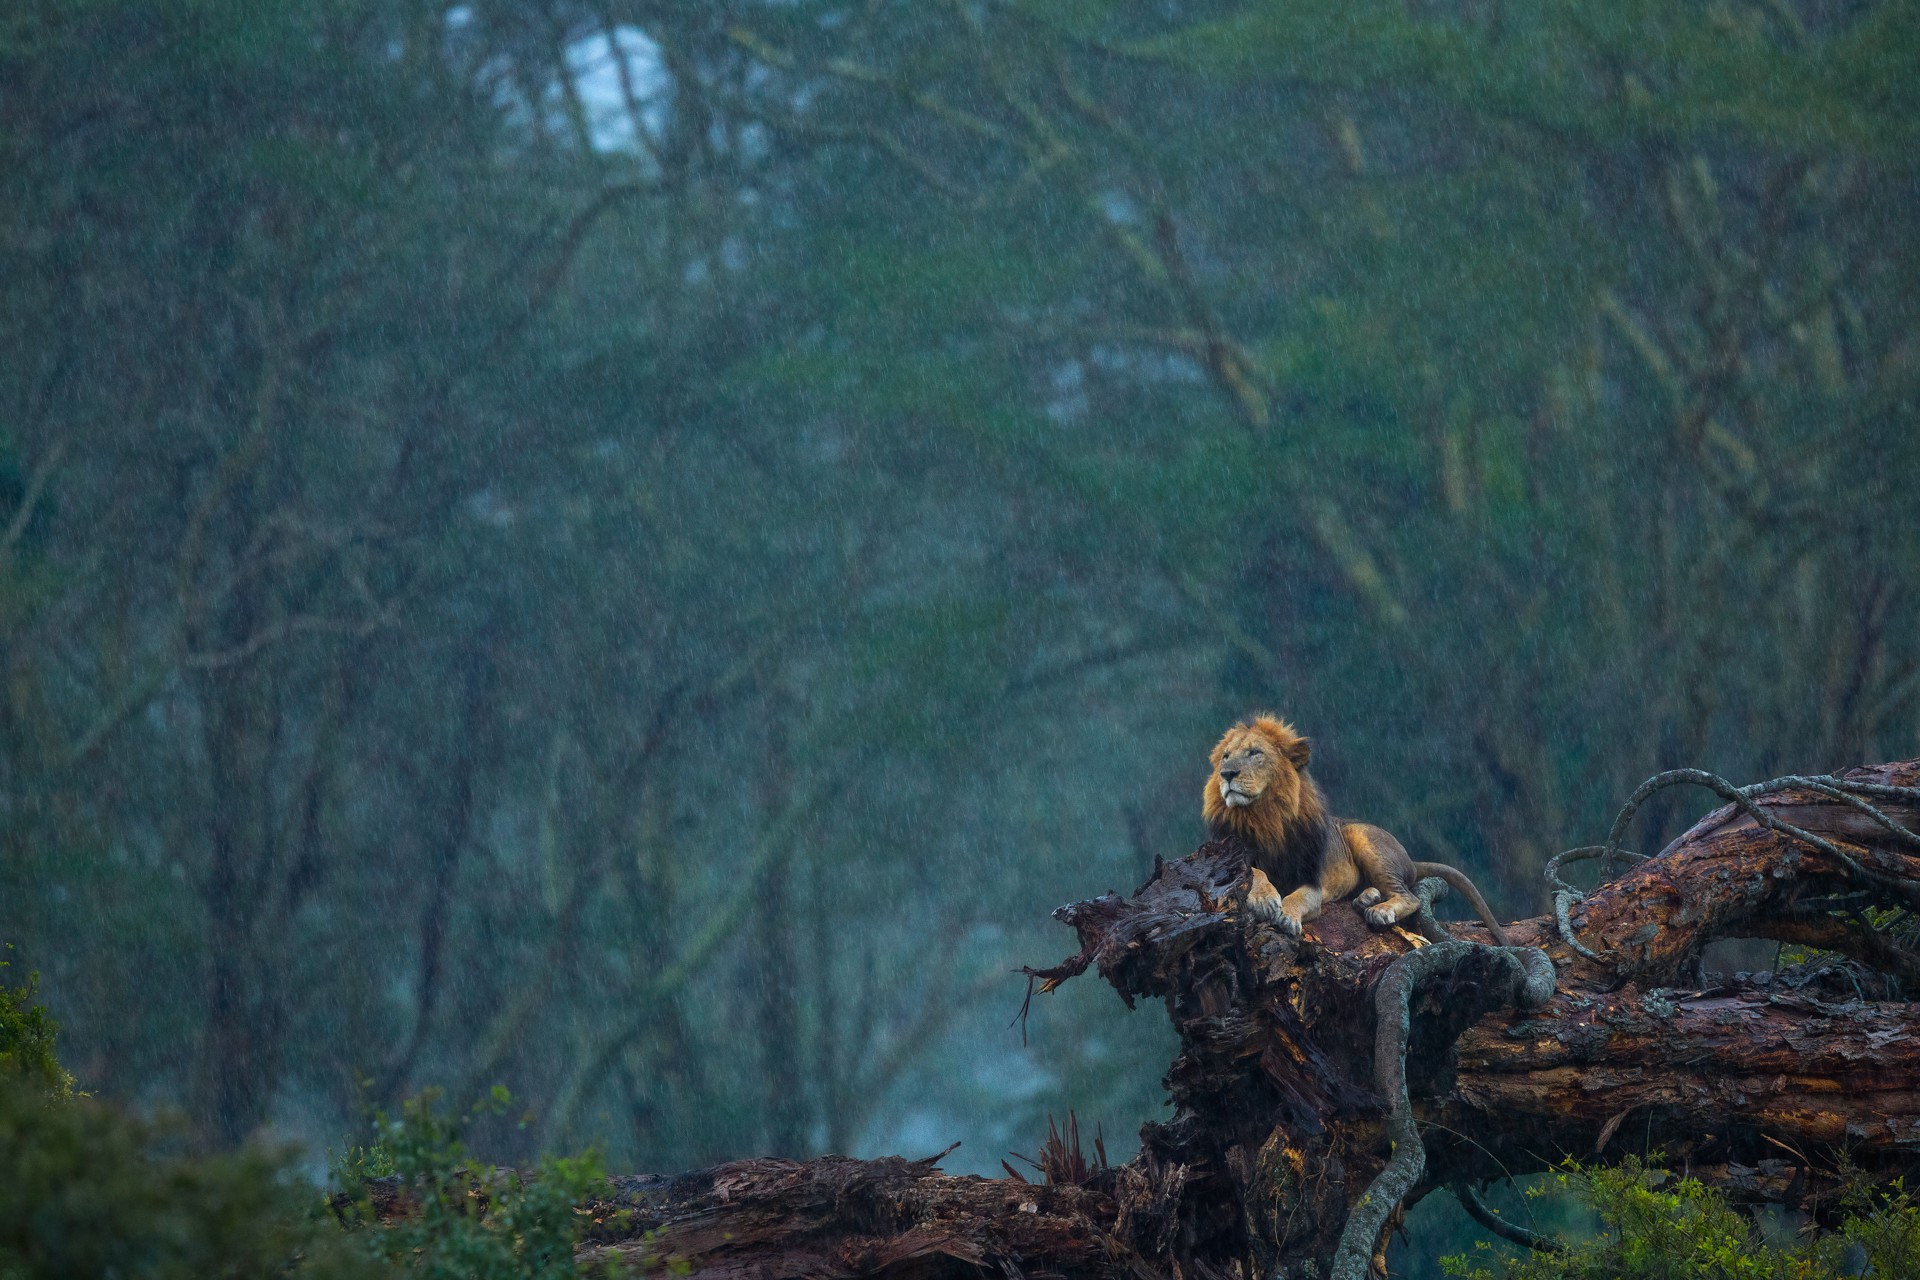 A lion perches on a log during a rainstorm in Lake Nakuru National Park.